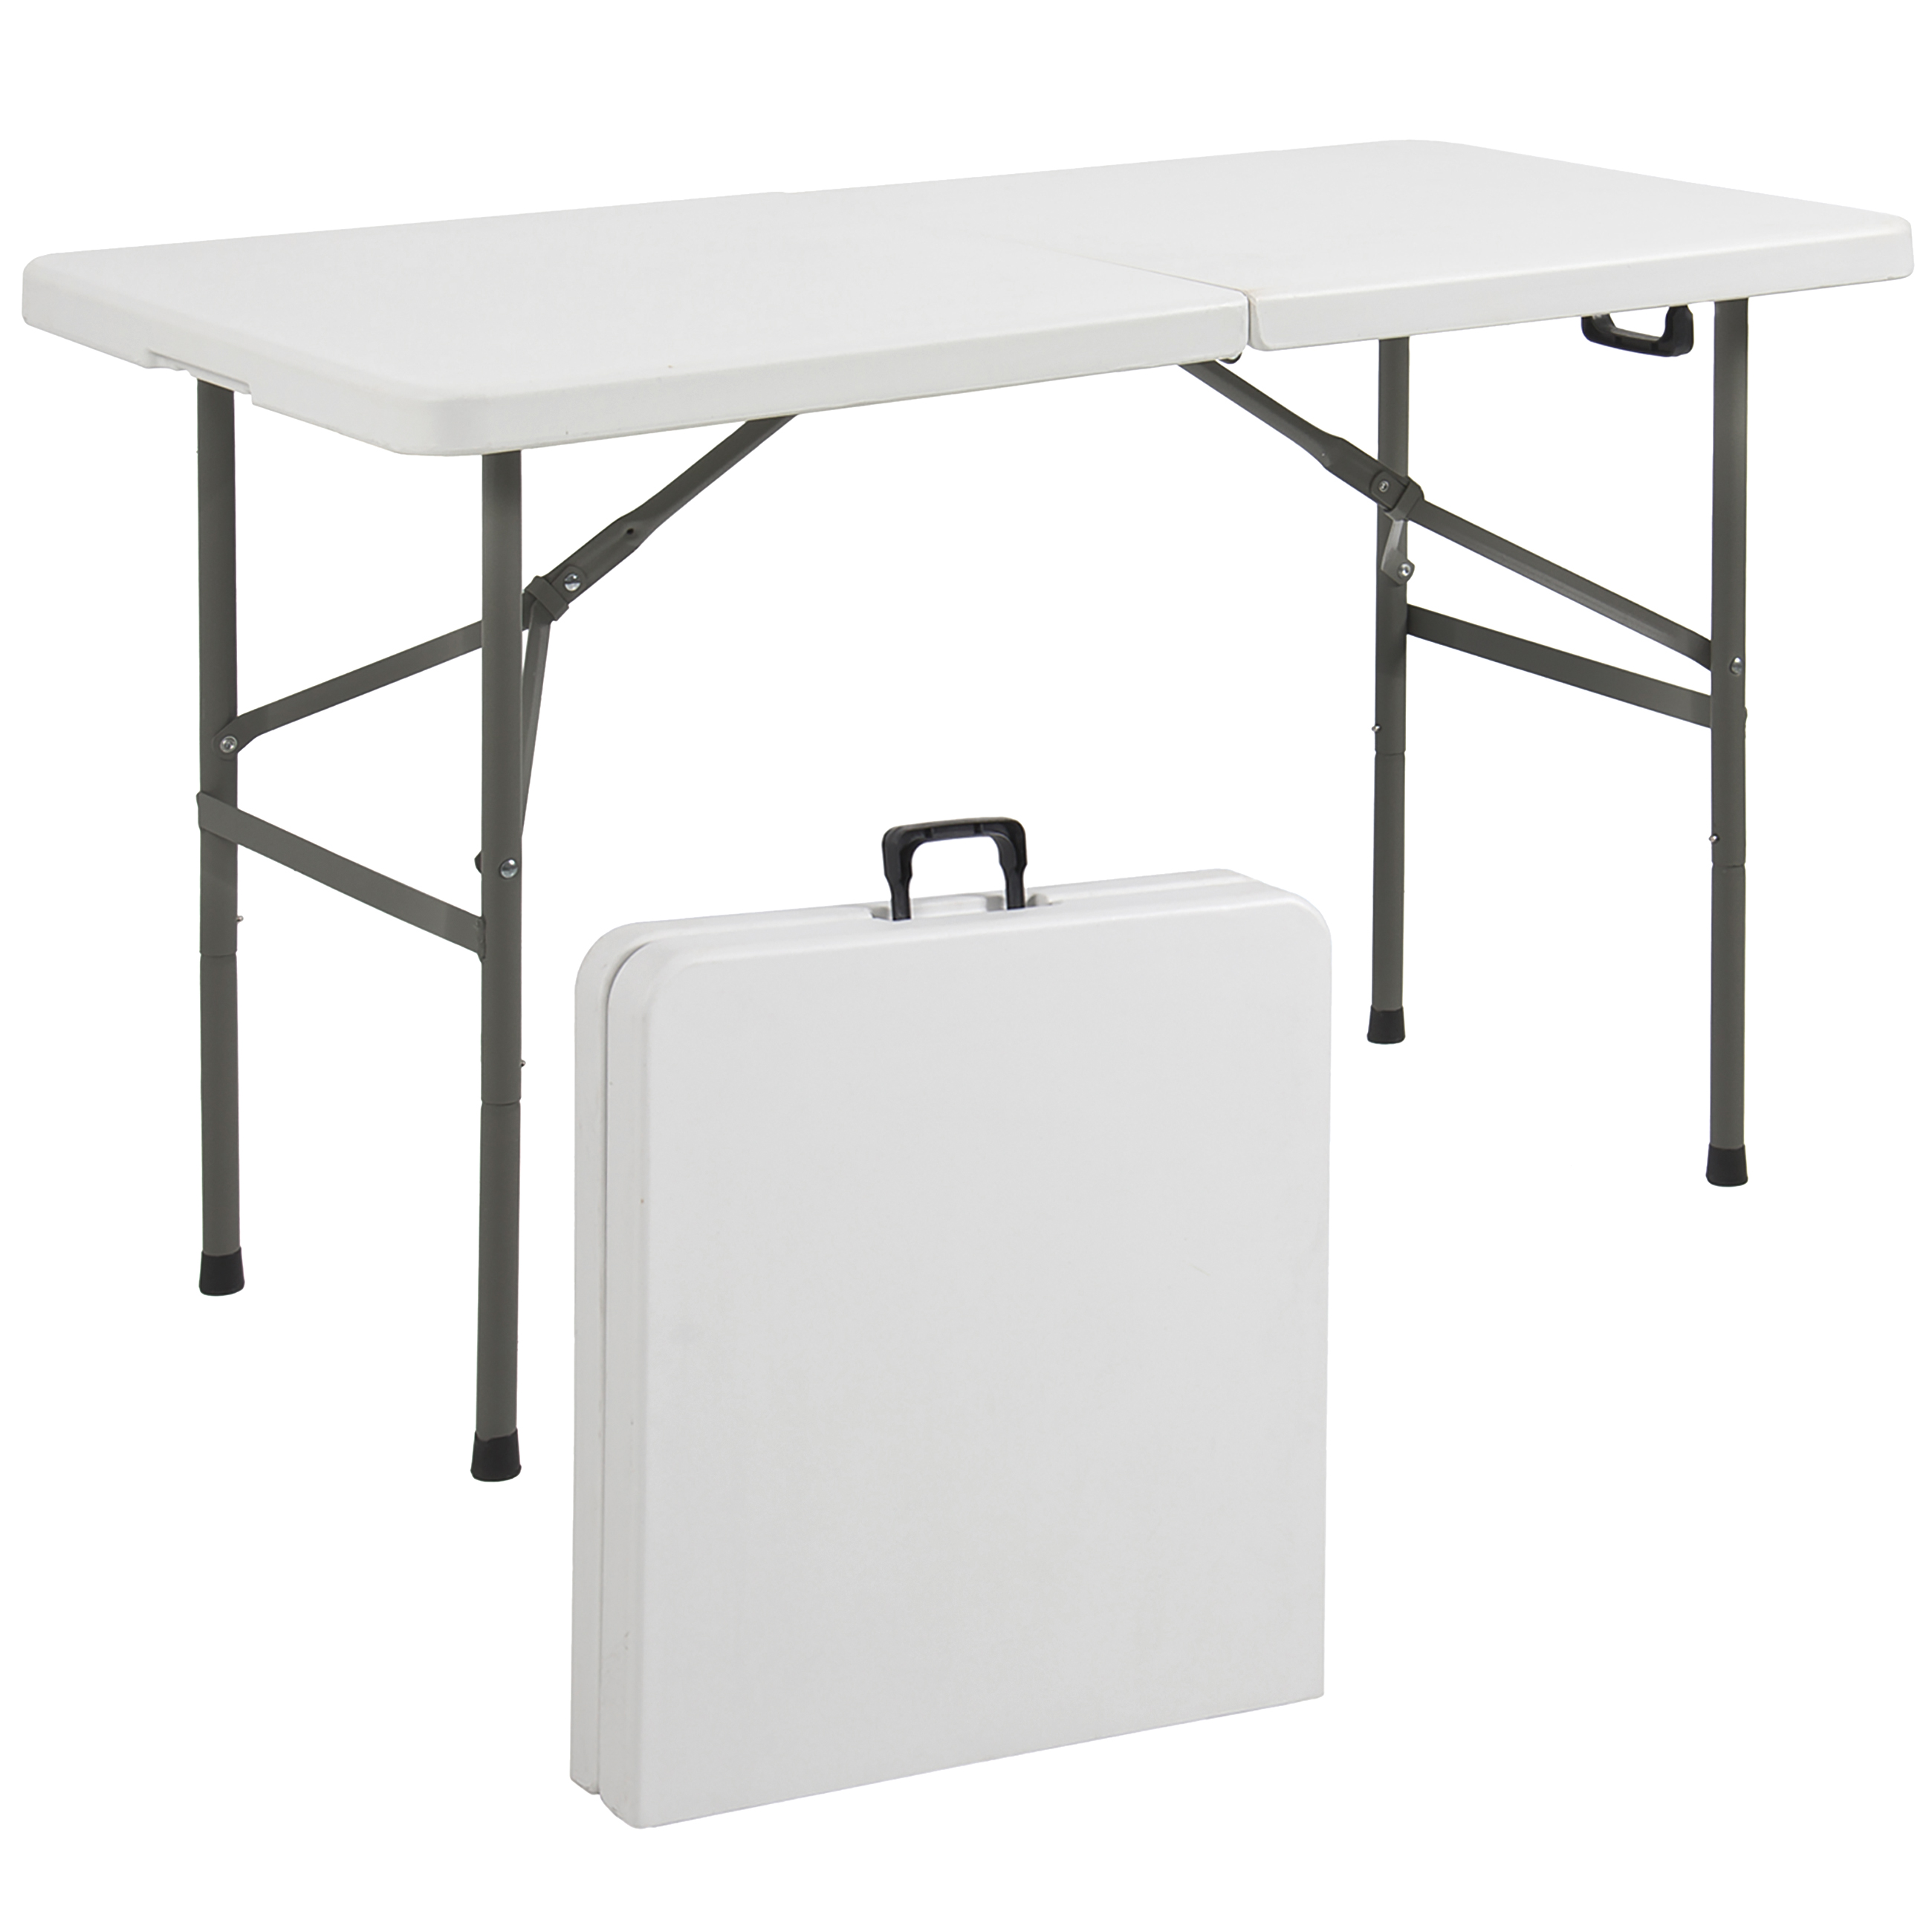 Folding Table 4u0027 Portable Plastic Indoor Outdoor Picnic Party Dining Camp  Tables